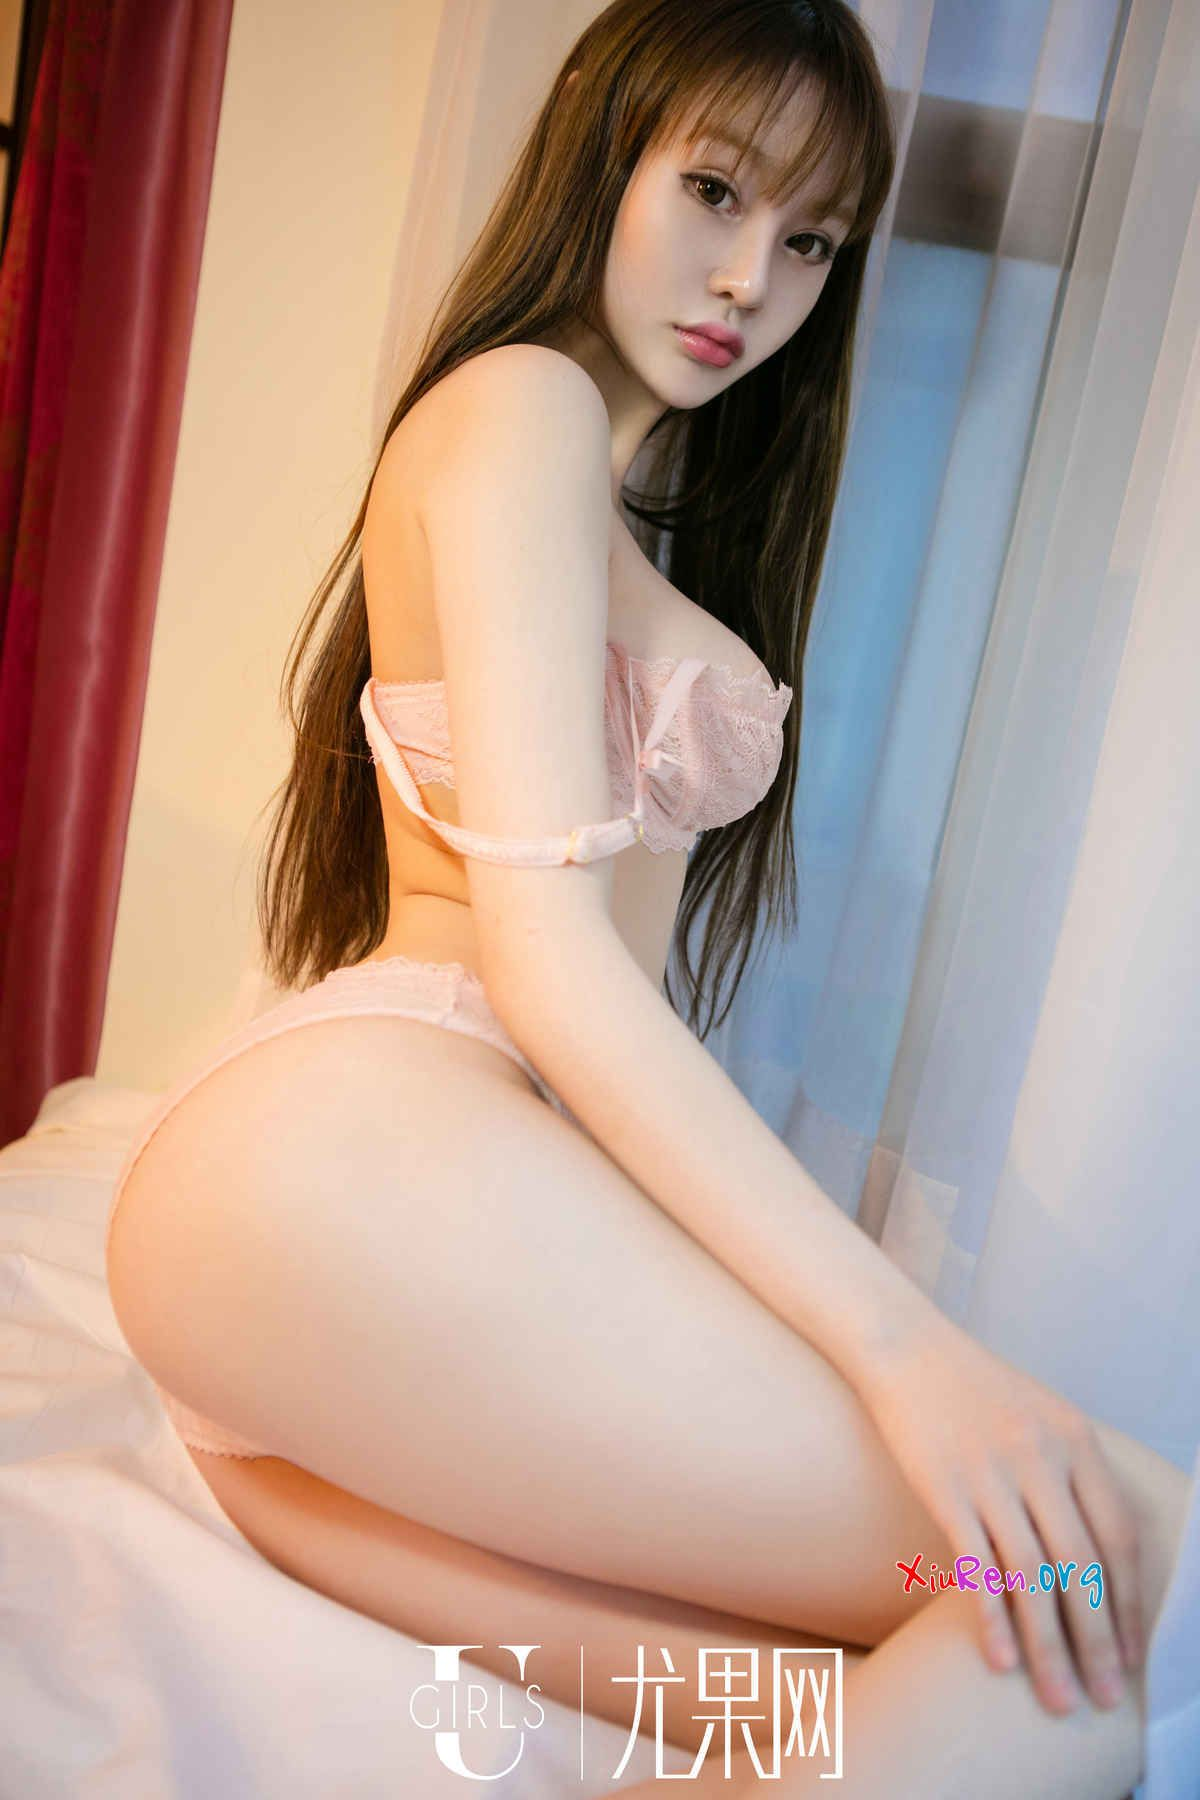 Hot Asian Girls Gallery